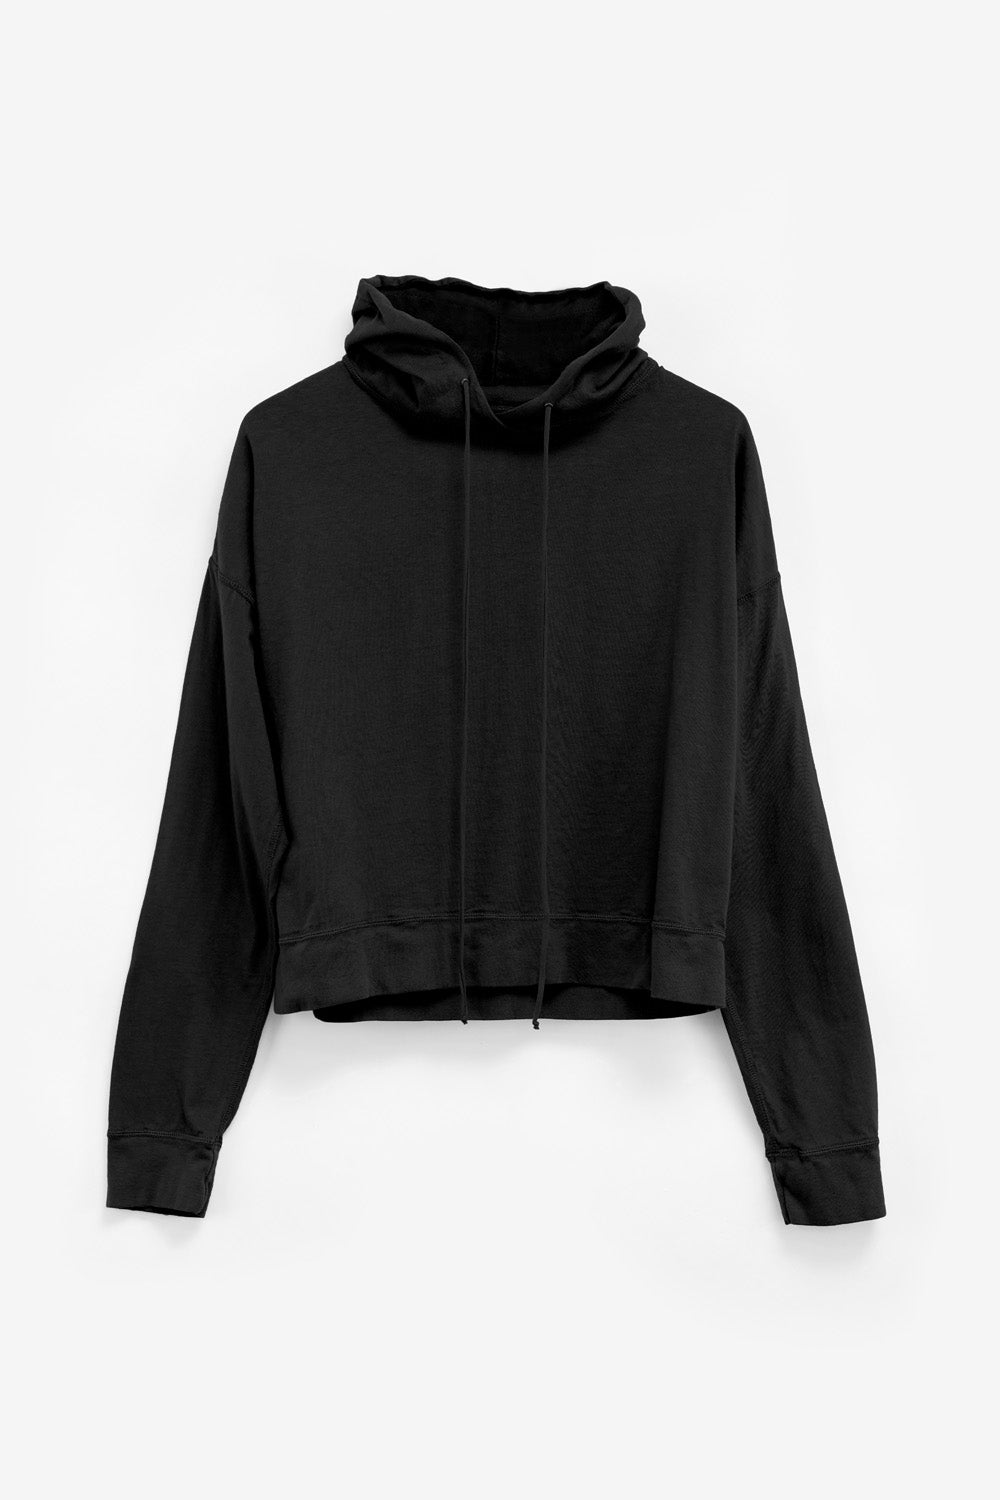 Alabama Chanin The Hoodie Women's Organic Cotton Hoodie with Tie in Black